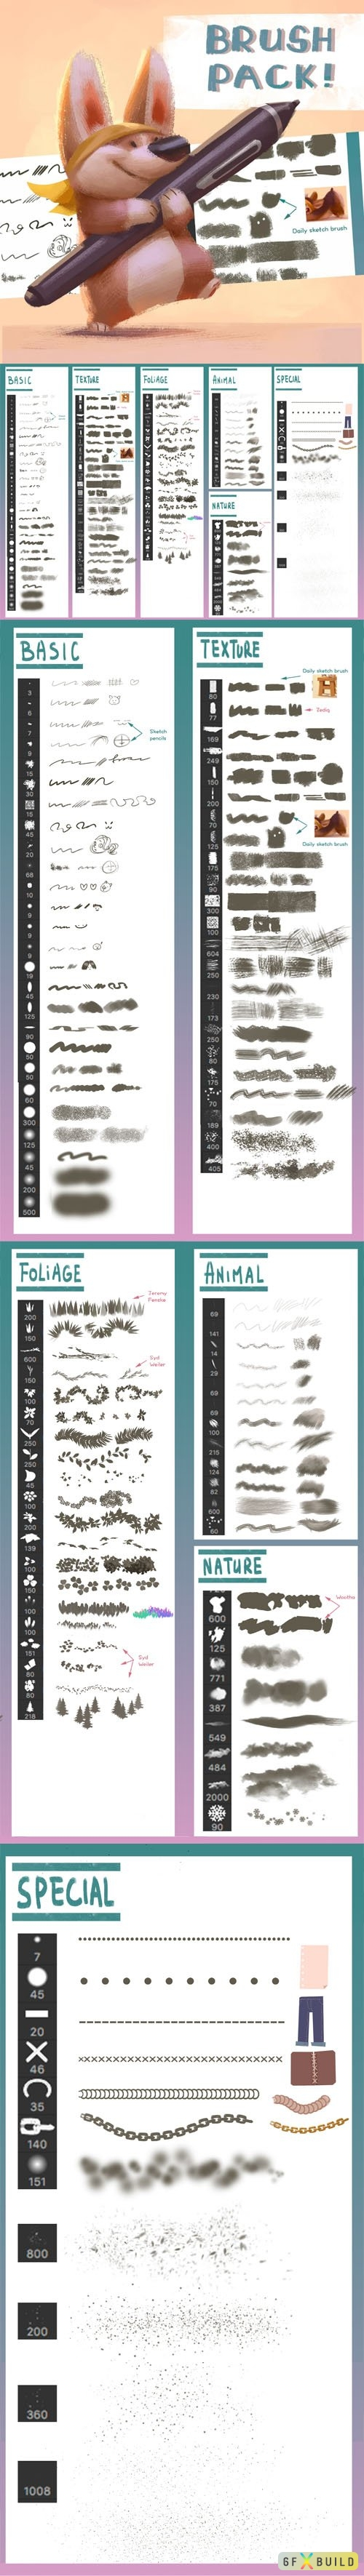 100+ Sketch Brushes for Photoshop